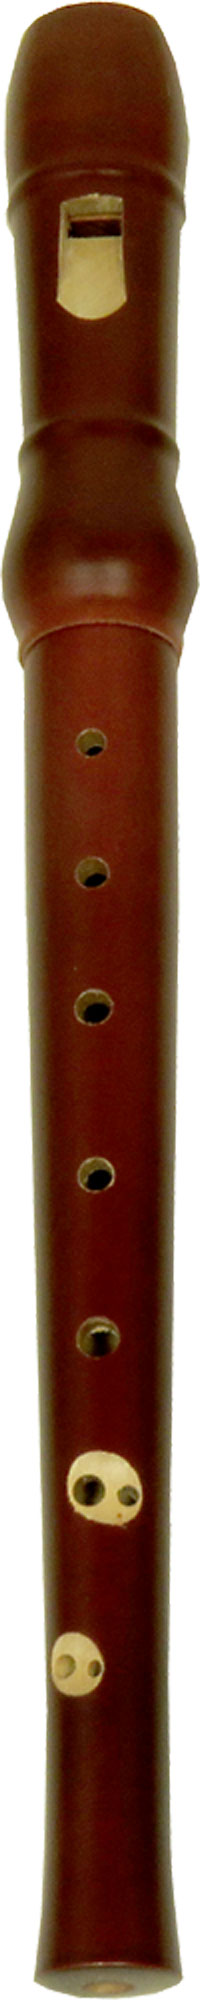 Meinel Descant Recorder, Maple Wood Maple brown finish wooden Recorder in 2 parts, in cloth bag